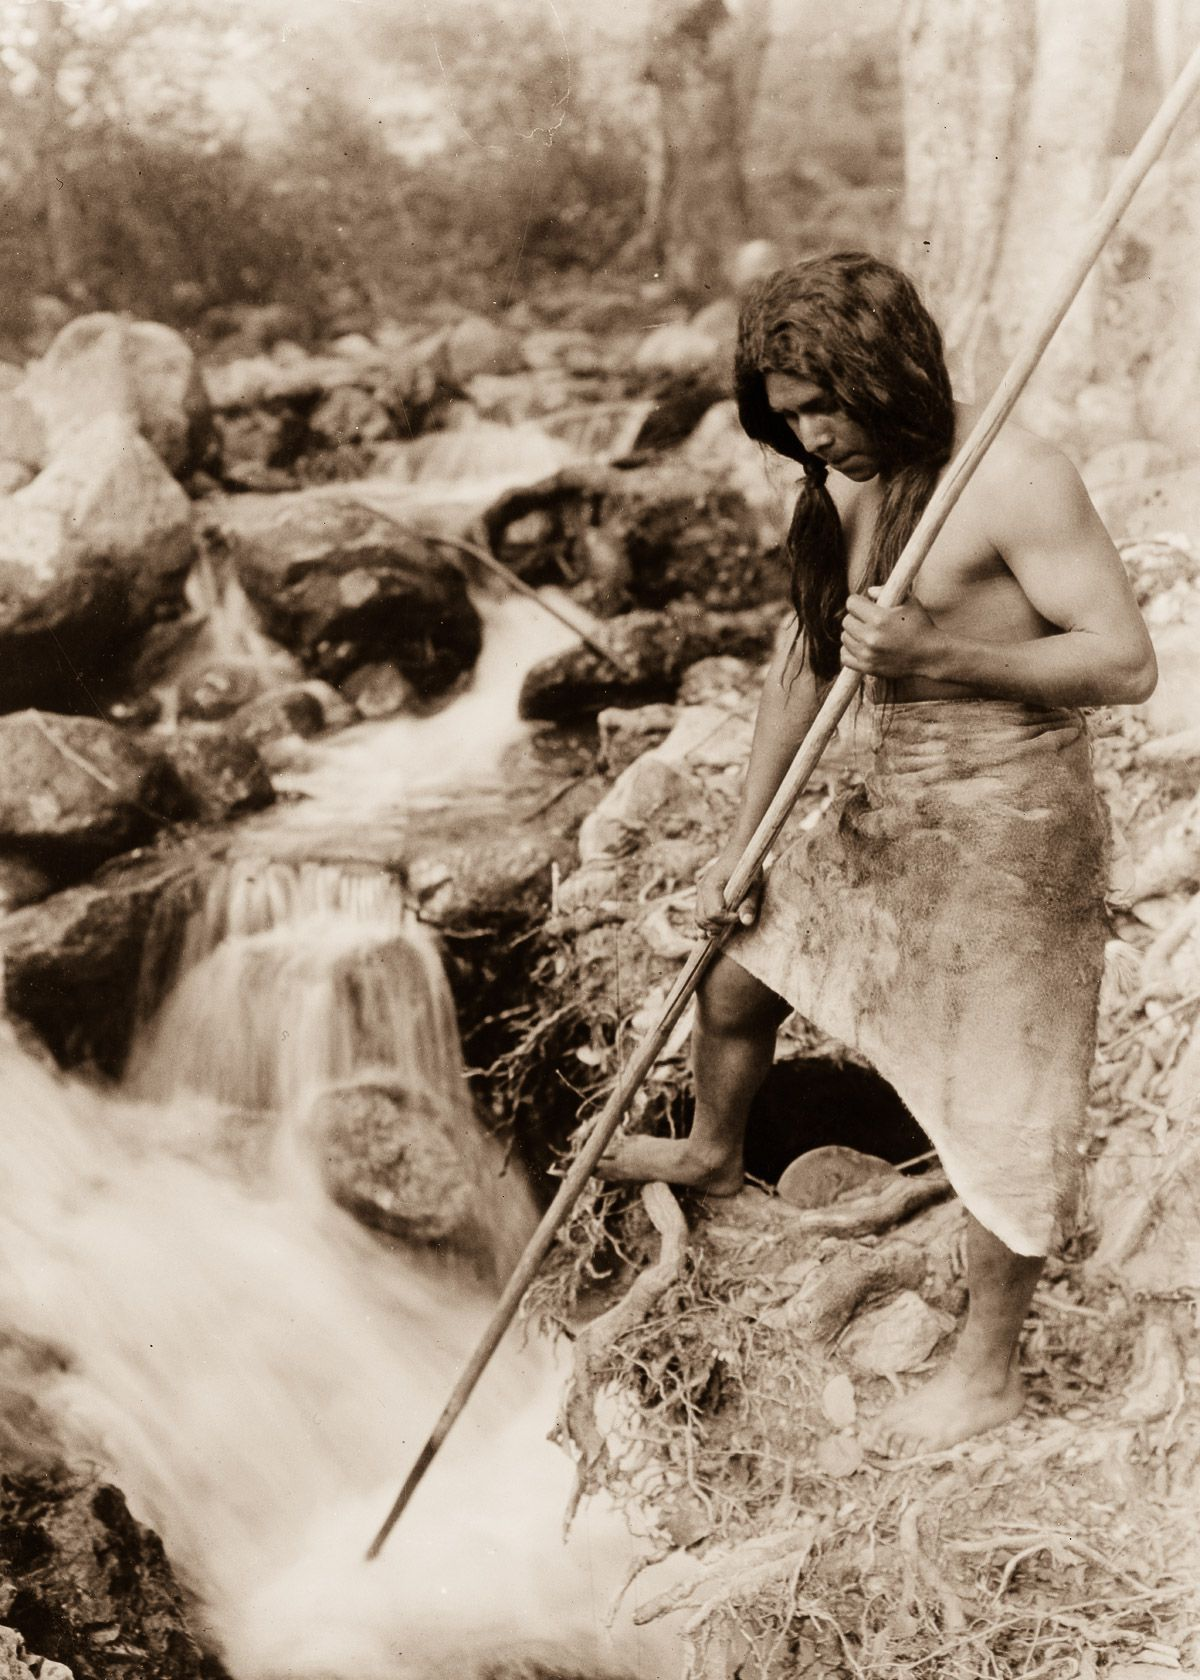 A Hupa spear fisherman watches for salmon,  1923.  ©EDWARD S. CURTIS/LIBRARY OF CONGRESS